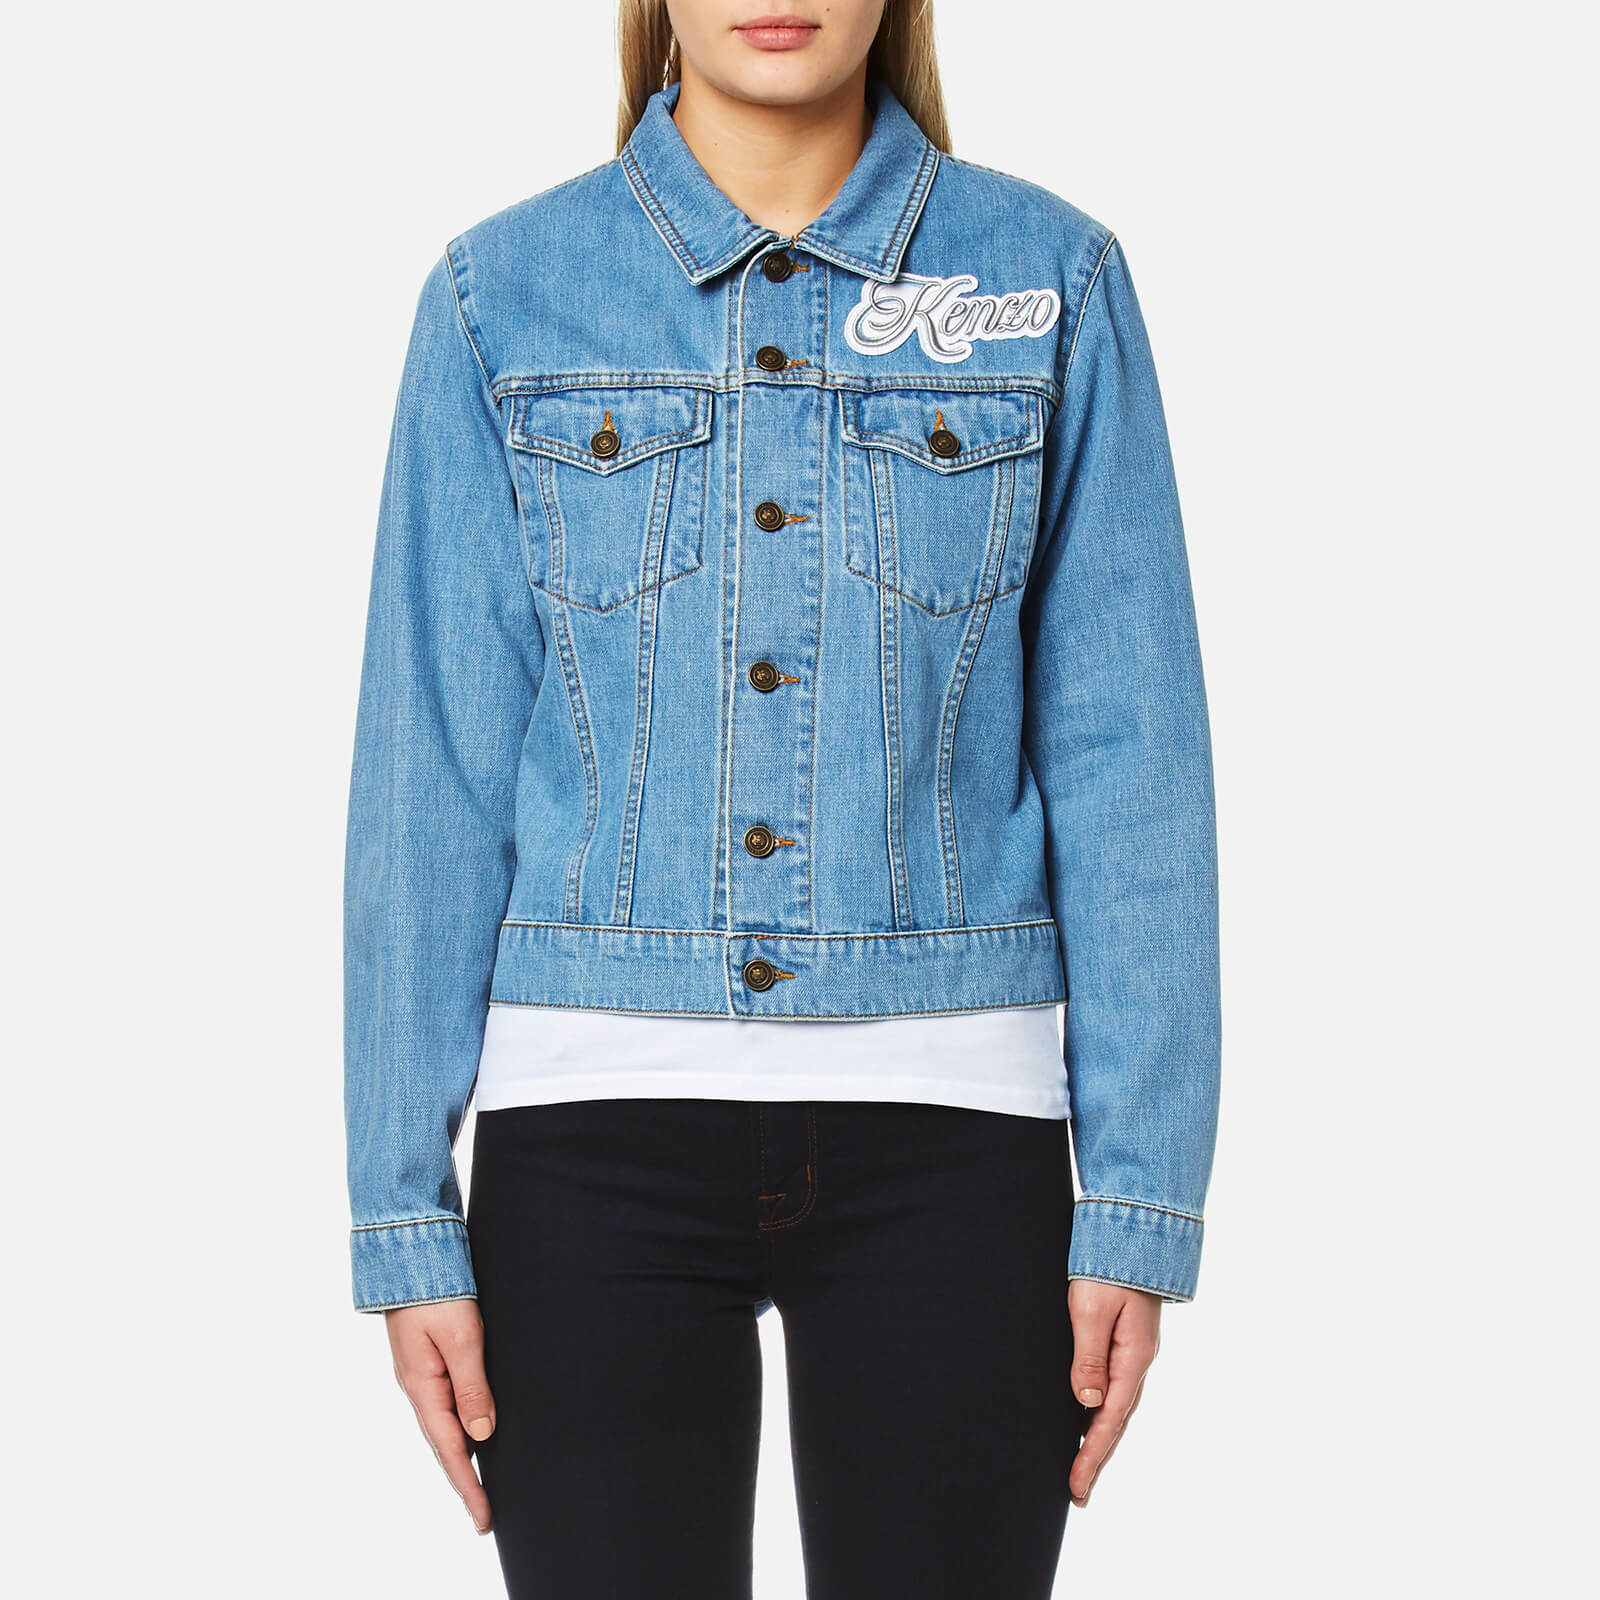 cacb80b6 KENZO Women's Bleached Denim Logo Jacket - Bleached Blue - Free UK Delivery  over £50